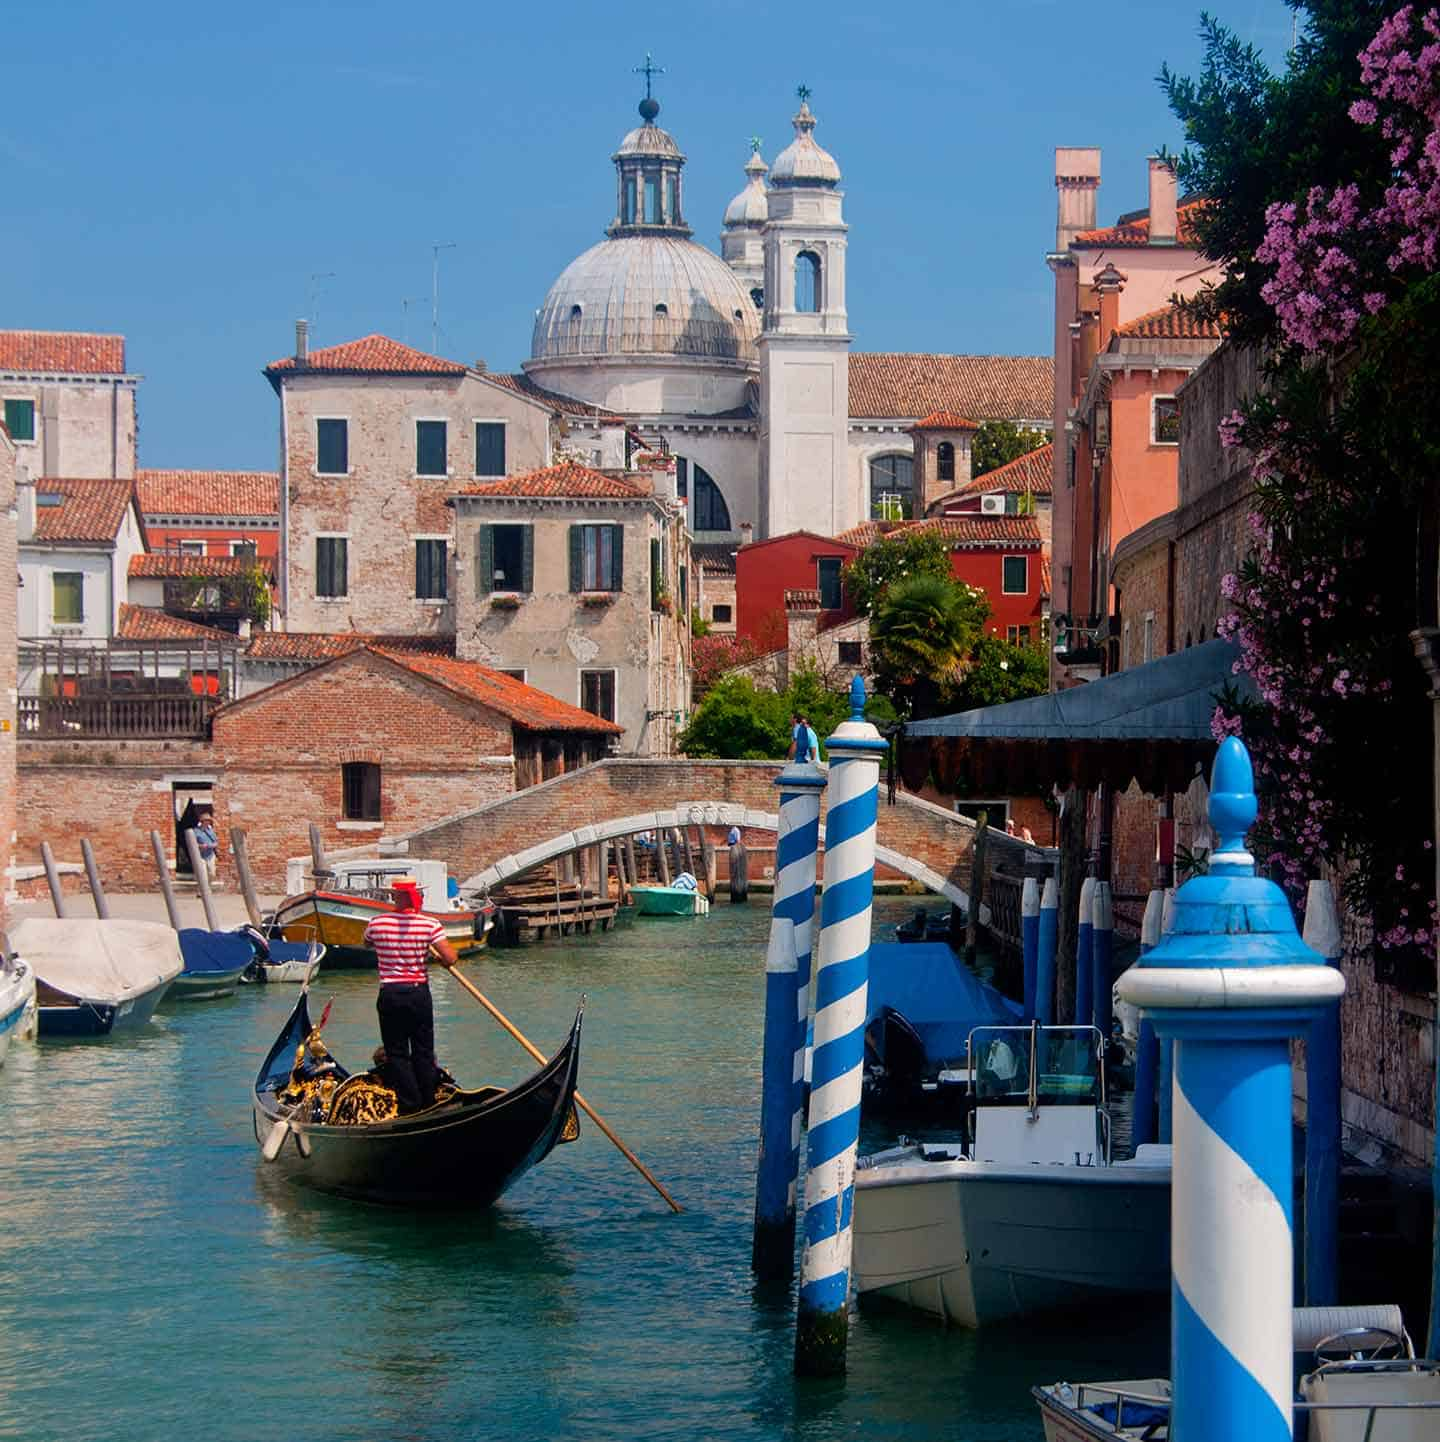 Image of gondola on a canal in the Dorsoduro district of Venice